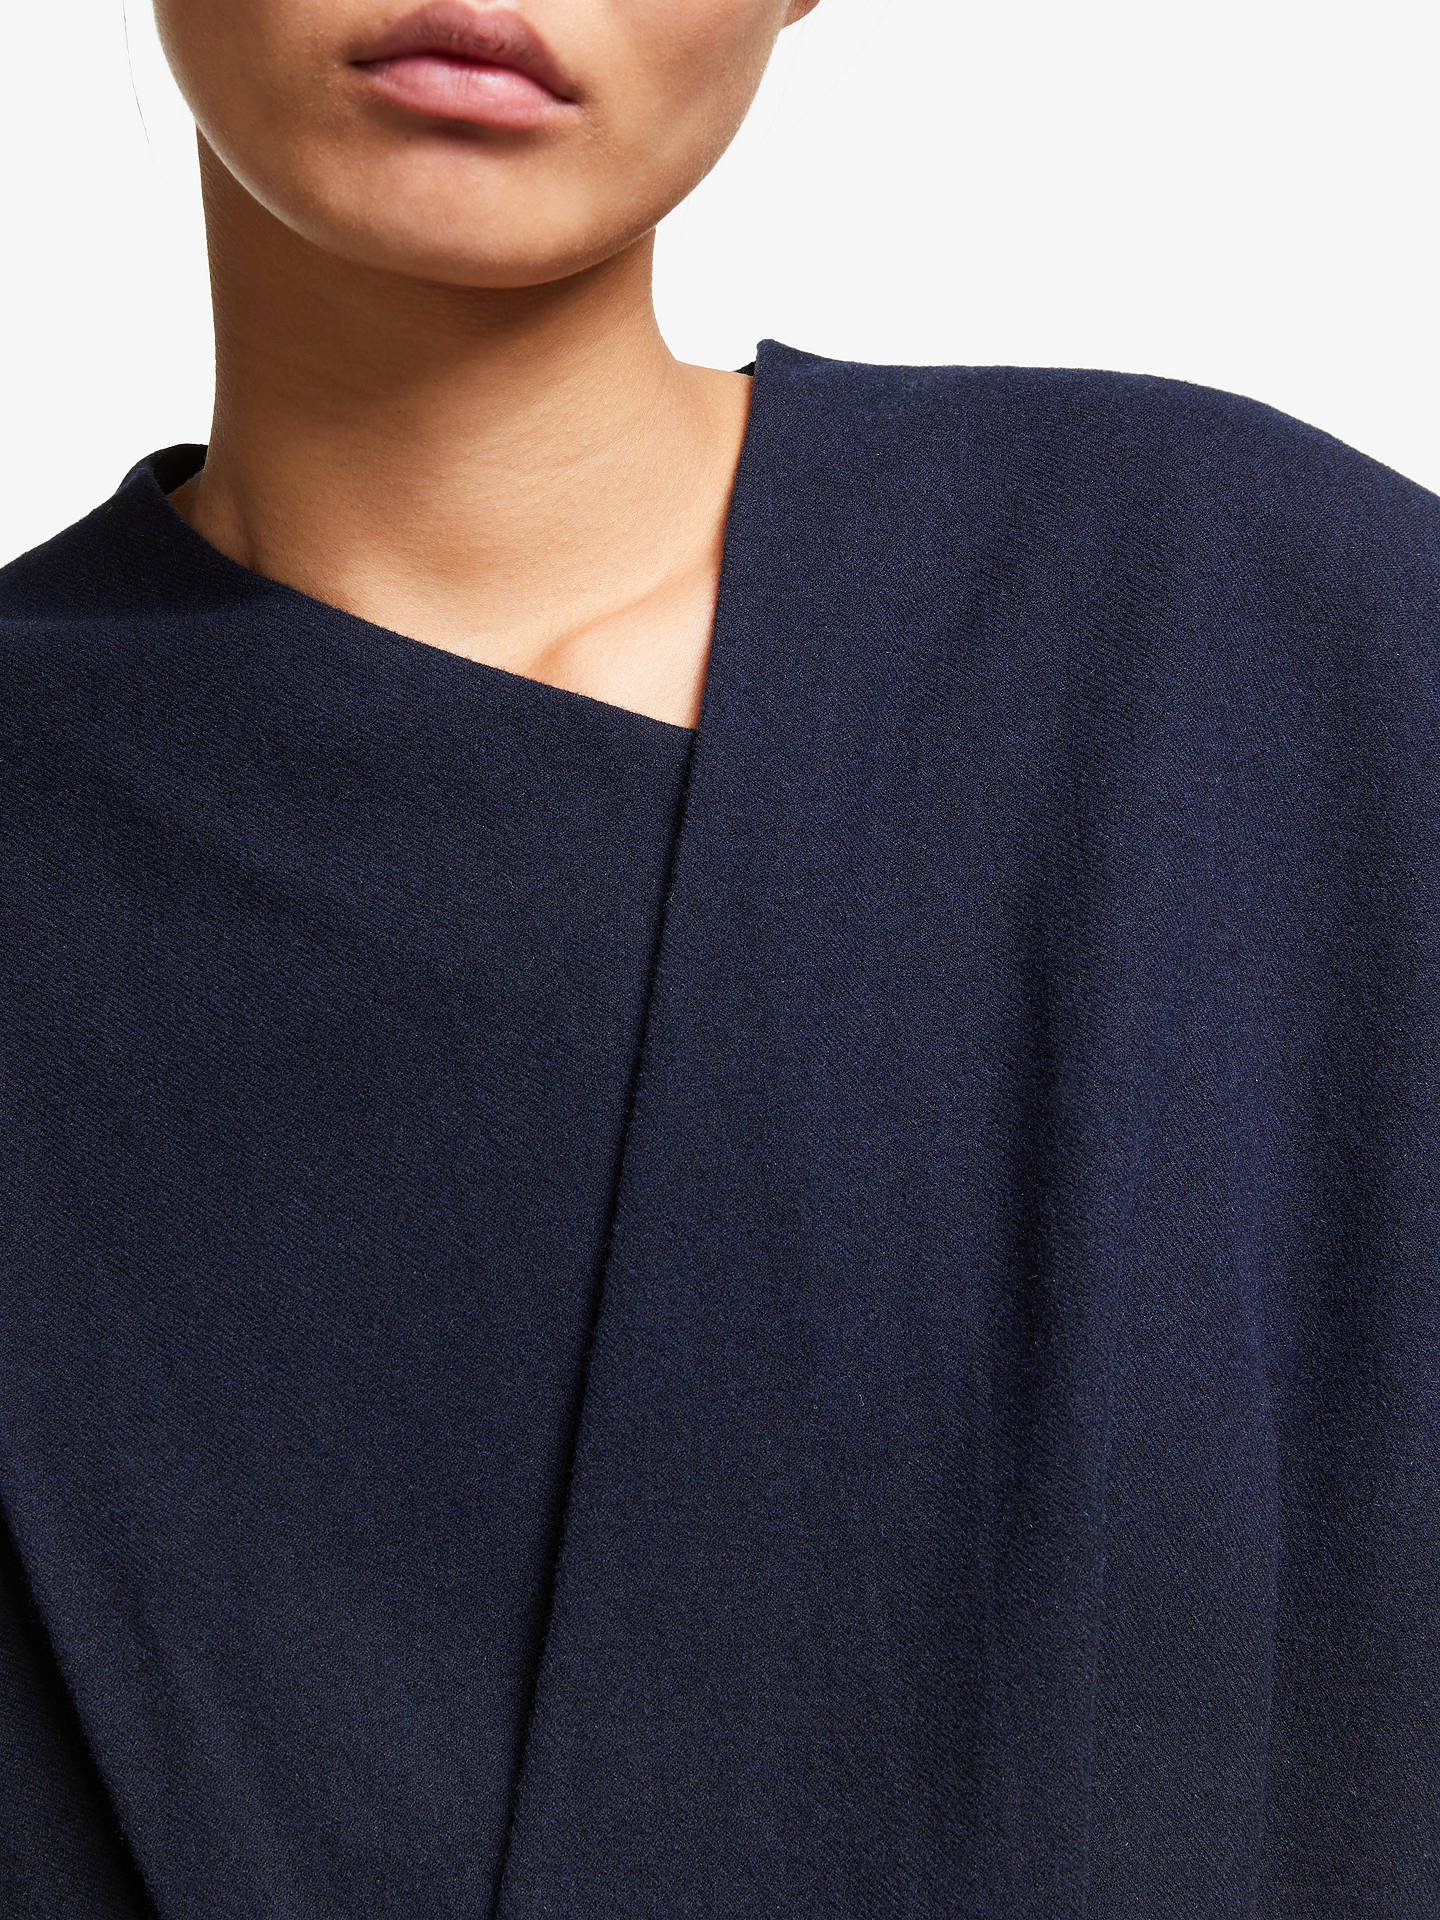 Buy Kin Wool Blend Blanket Wrap Top, Blue, 8 Online at johnlewis.com